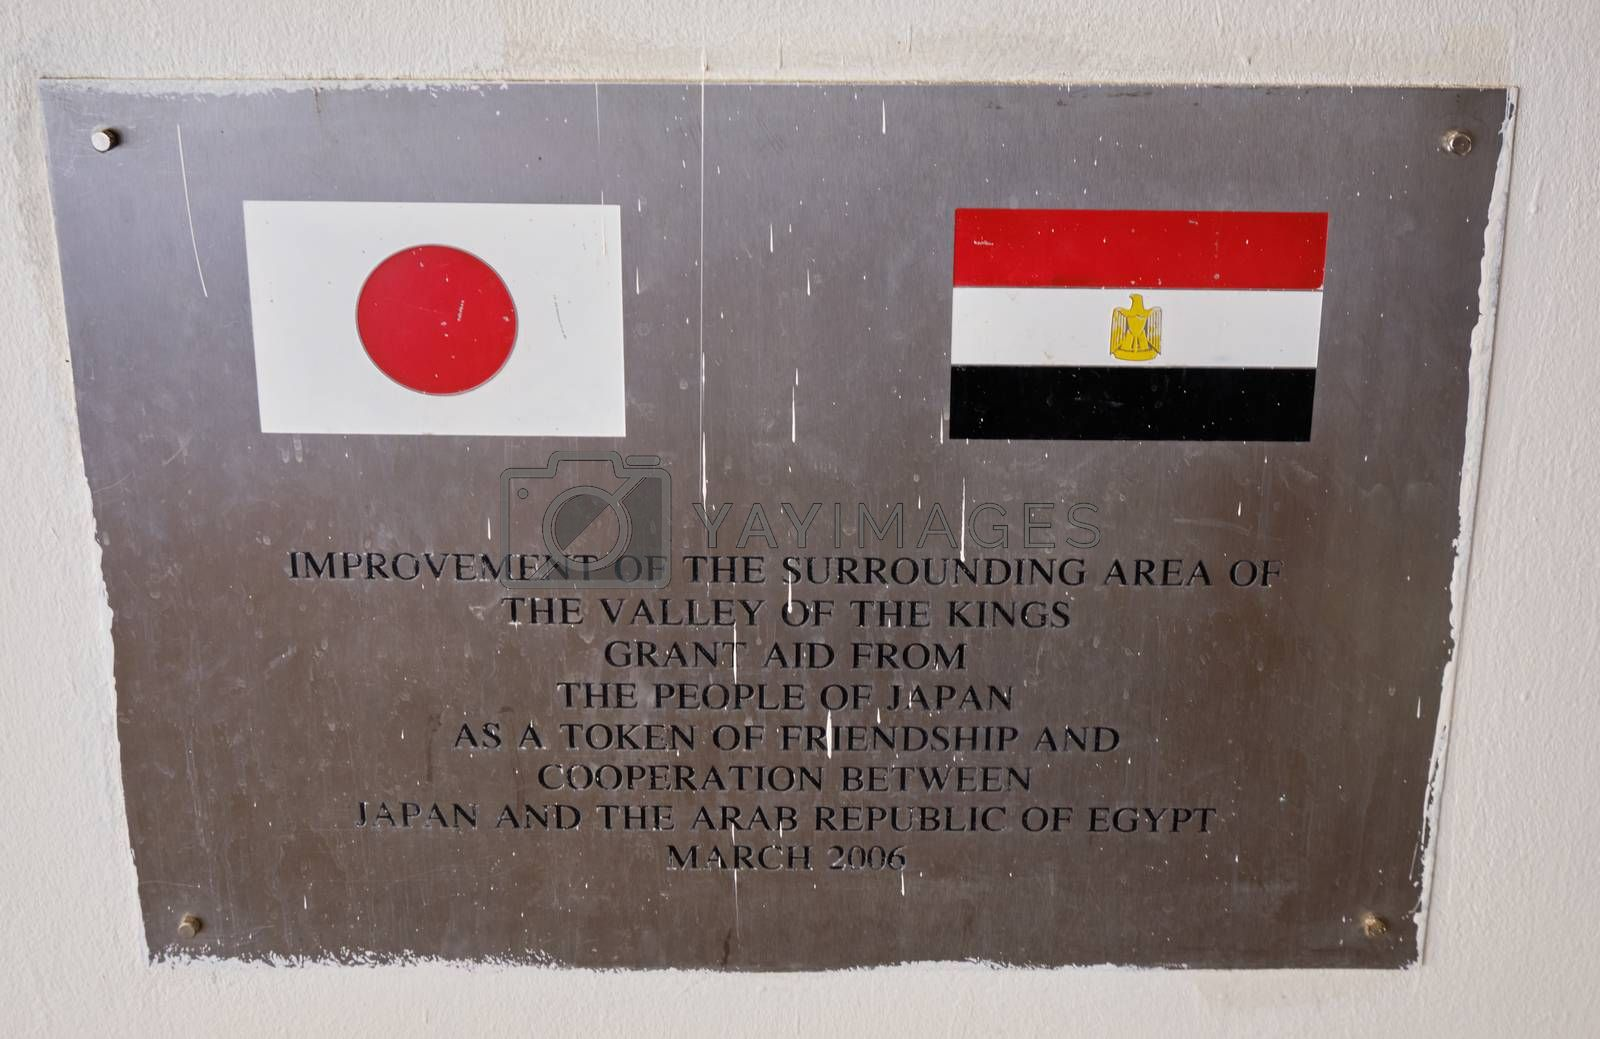 Luxor / Egypt - May 23 2019: Plaque informing about the grant aid from Japan to Egypt for restoration works of ancient Egyptian archaeological sites in the Valley of the Kings in Luxor, Egypt